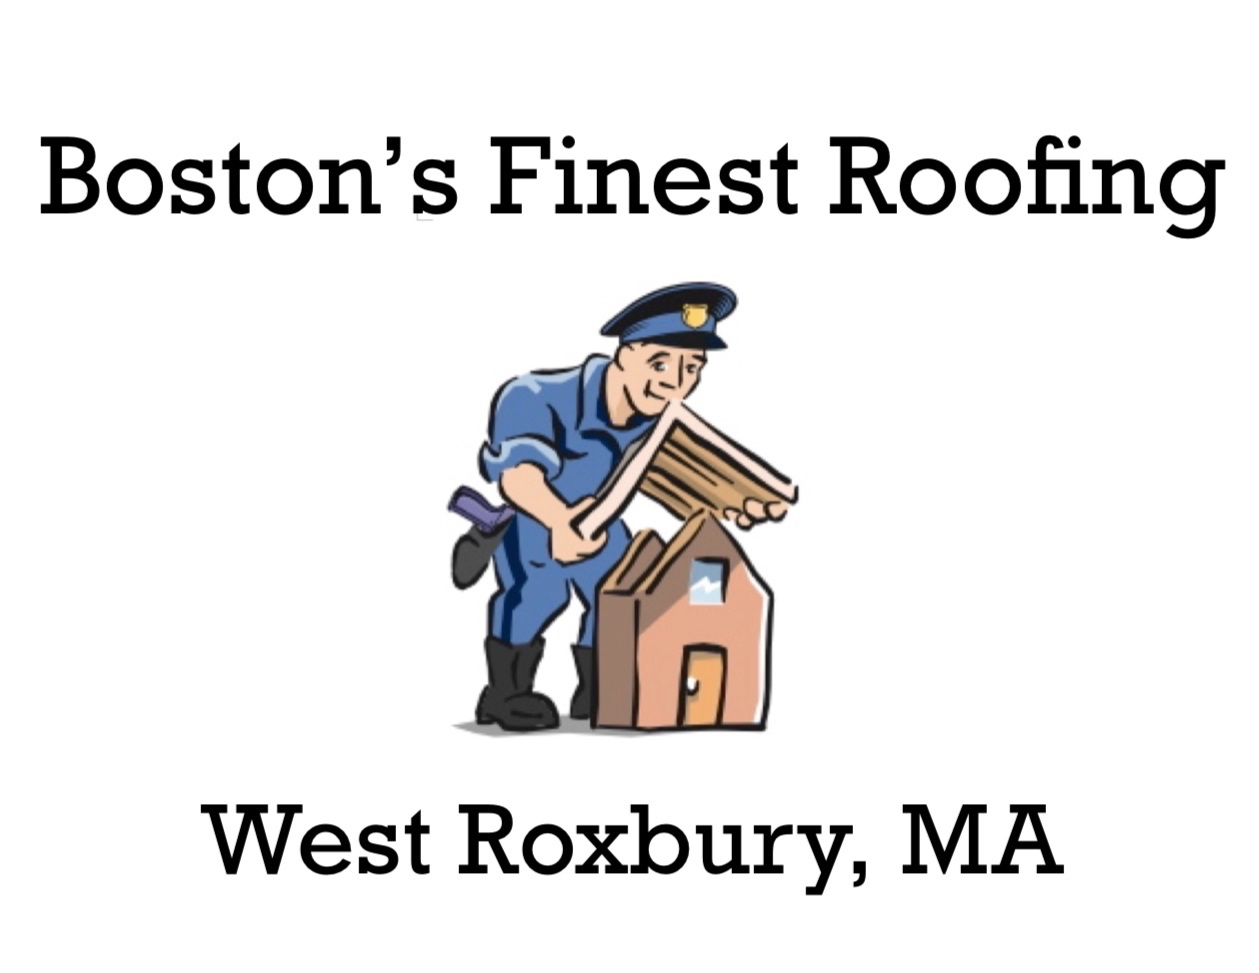 Boston's Finest Roofing, LLC